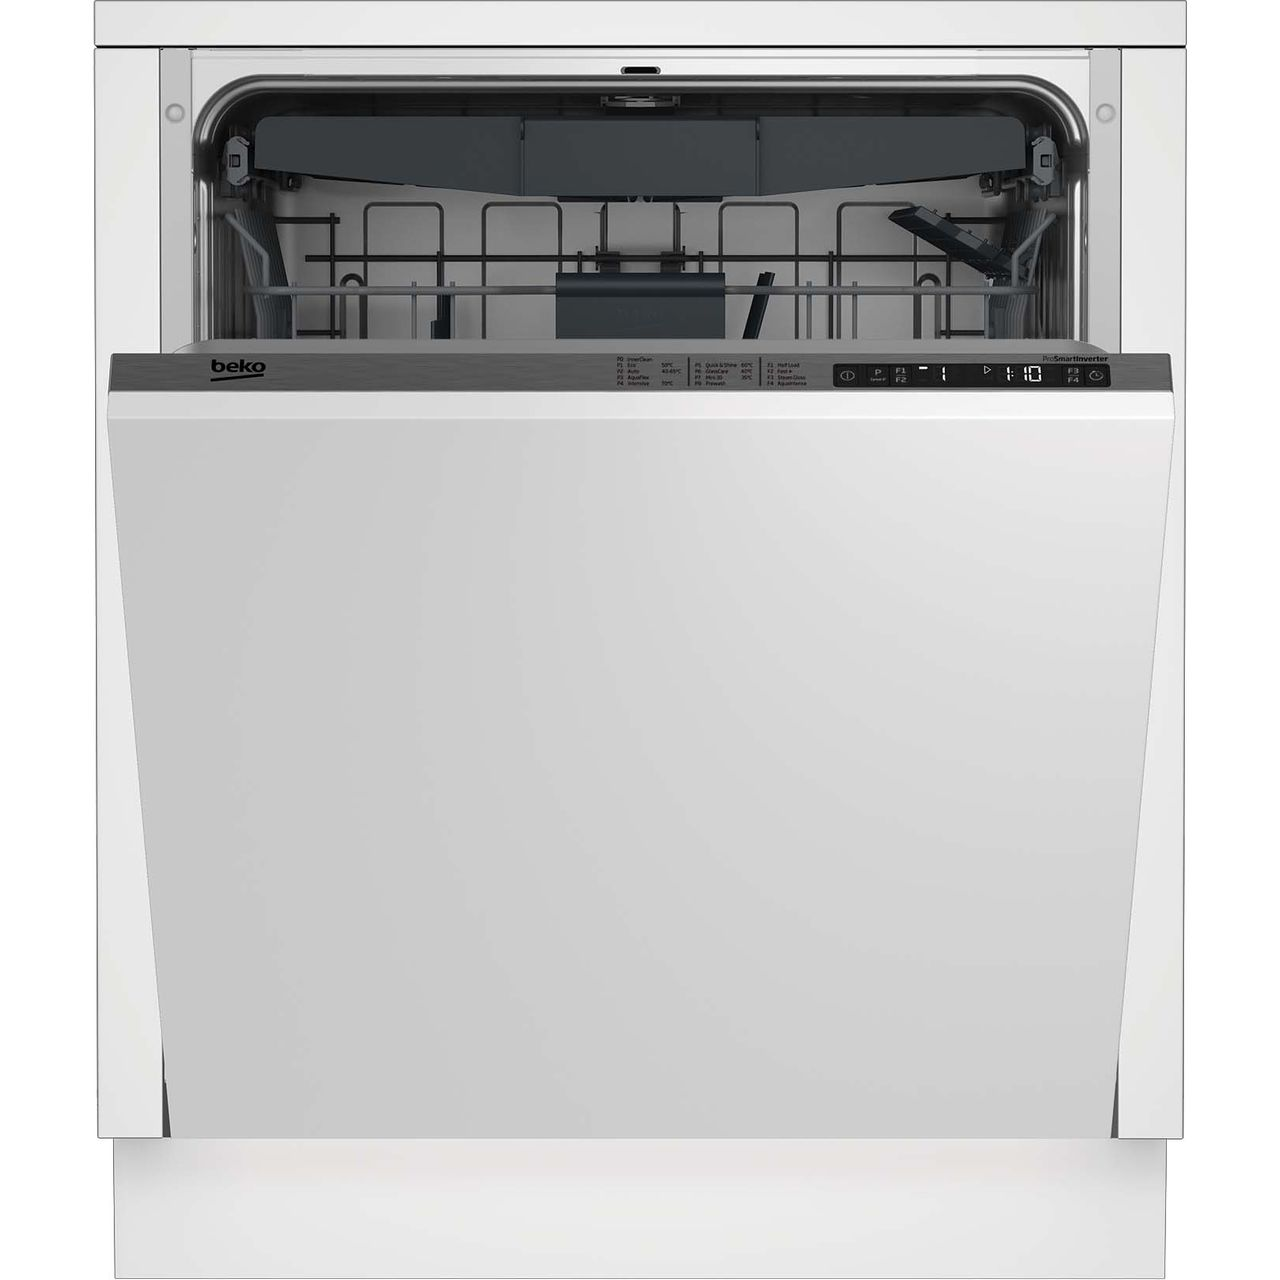 79b6c9cdb87 ... Beko DIN28R22 Fully Integrated Standard Dishwasher - Silver Control  Panel with Fixed Door Fixing Kit ...